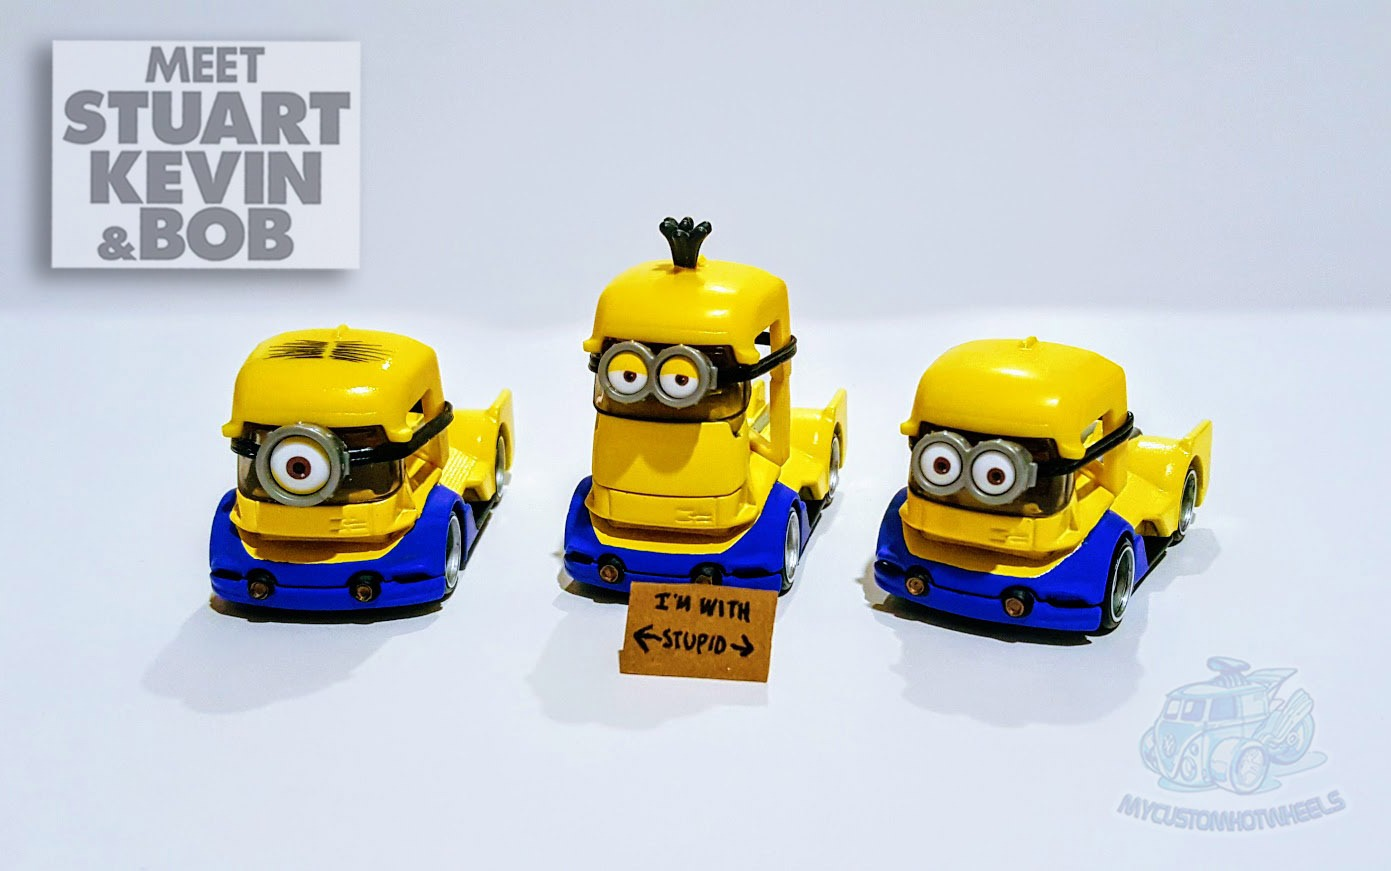 minion movie meet stuart kevin and bob